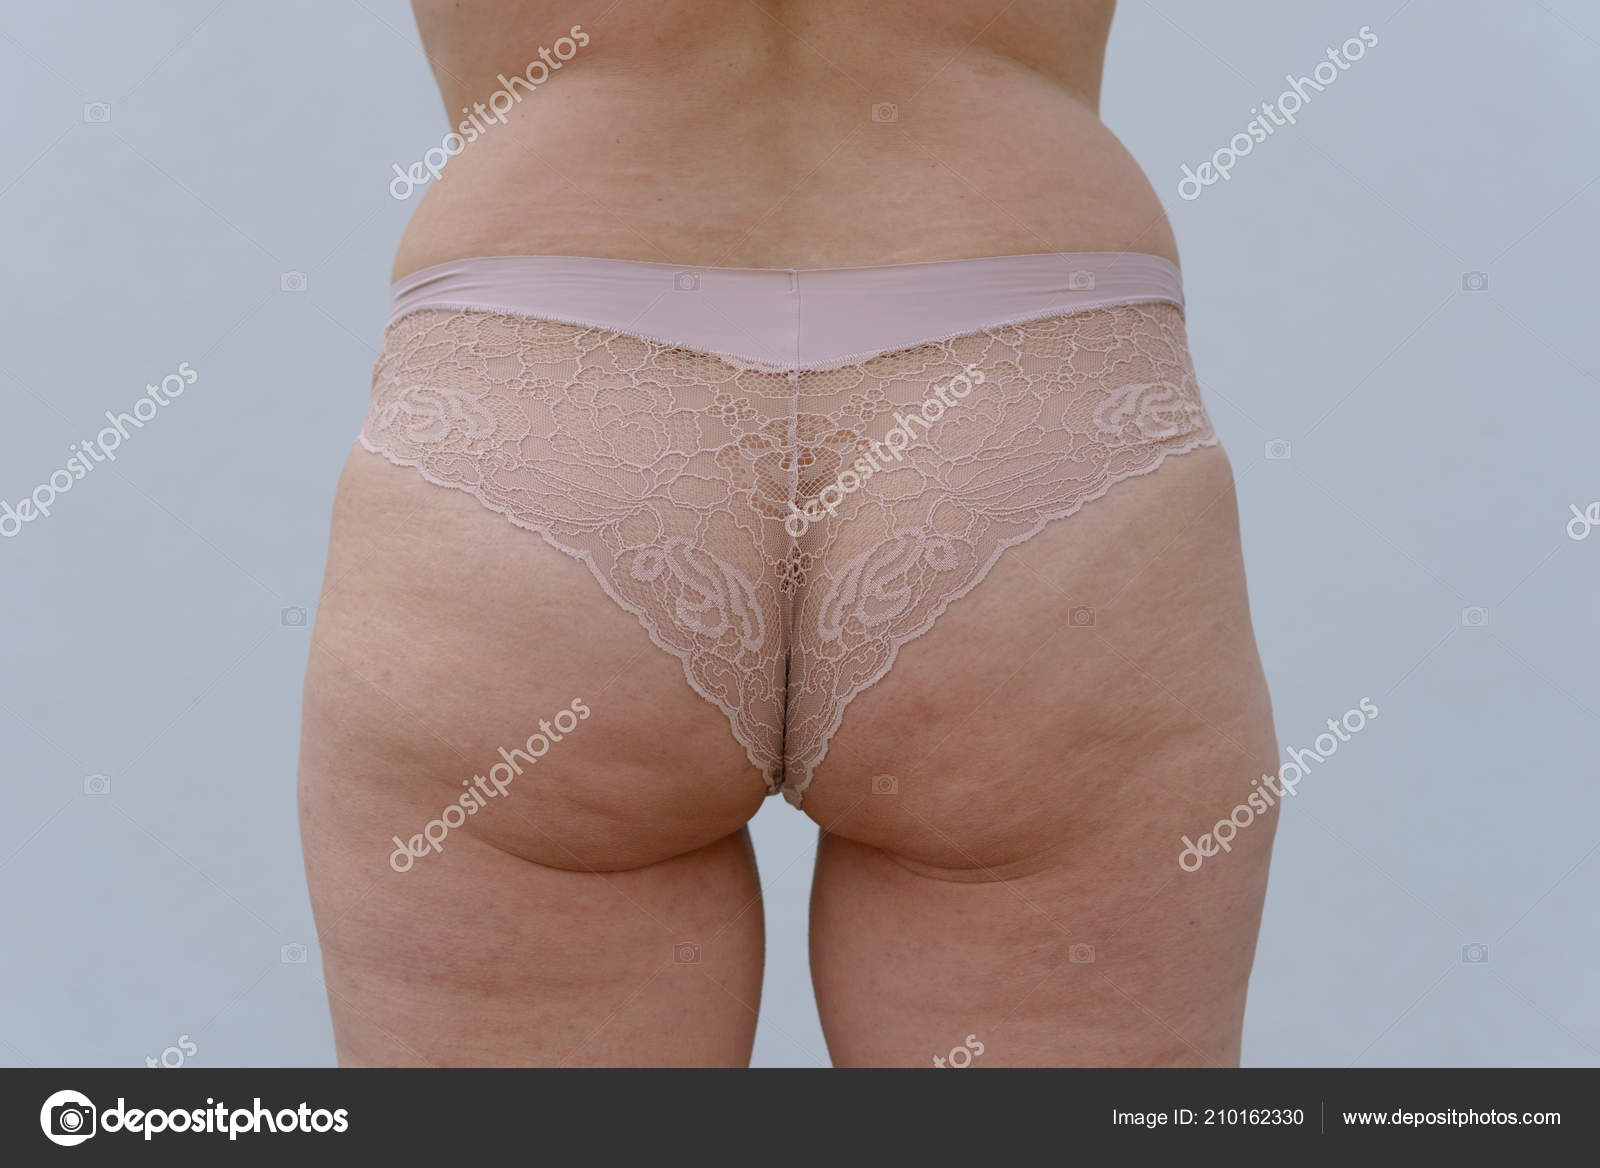 Middle aged womans buttocks